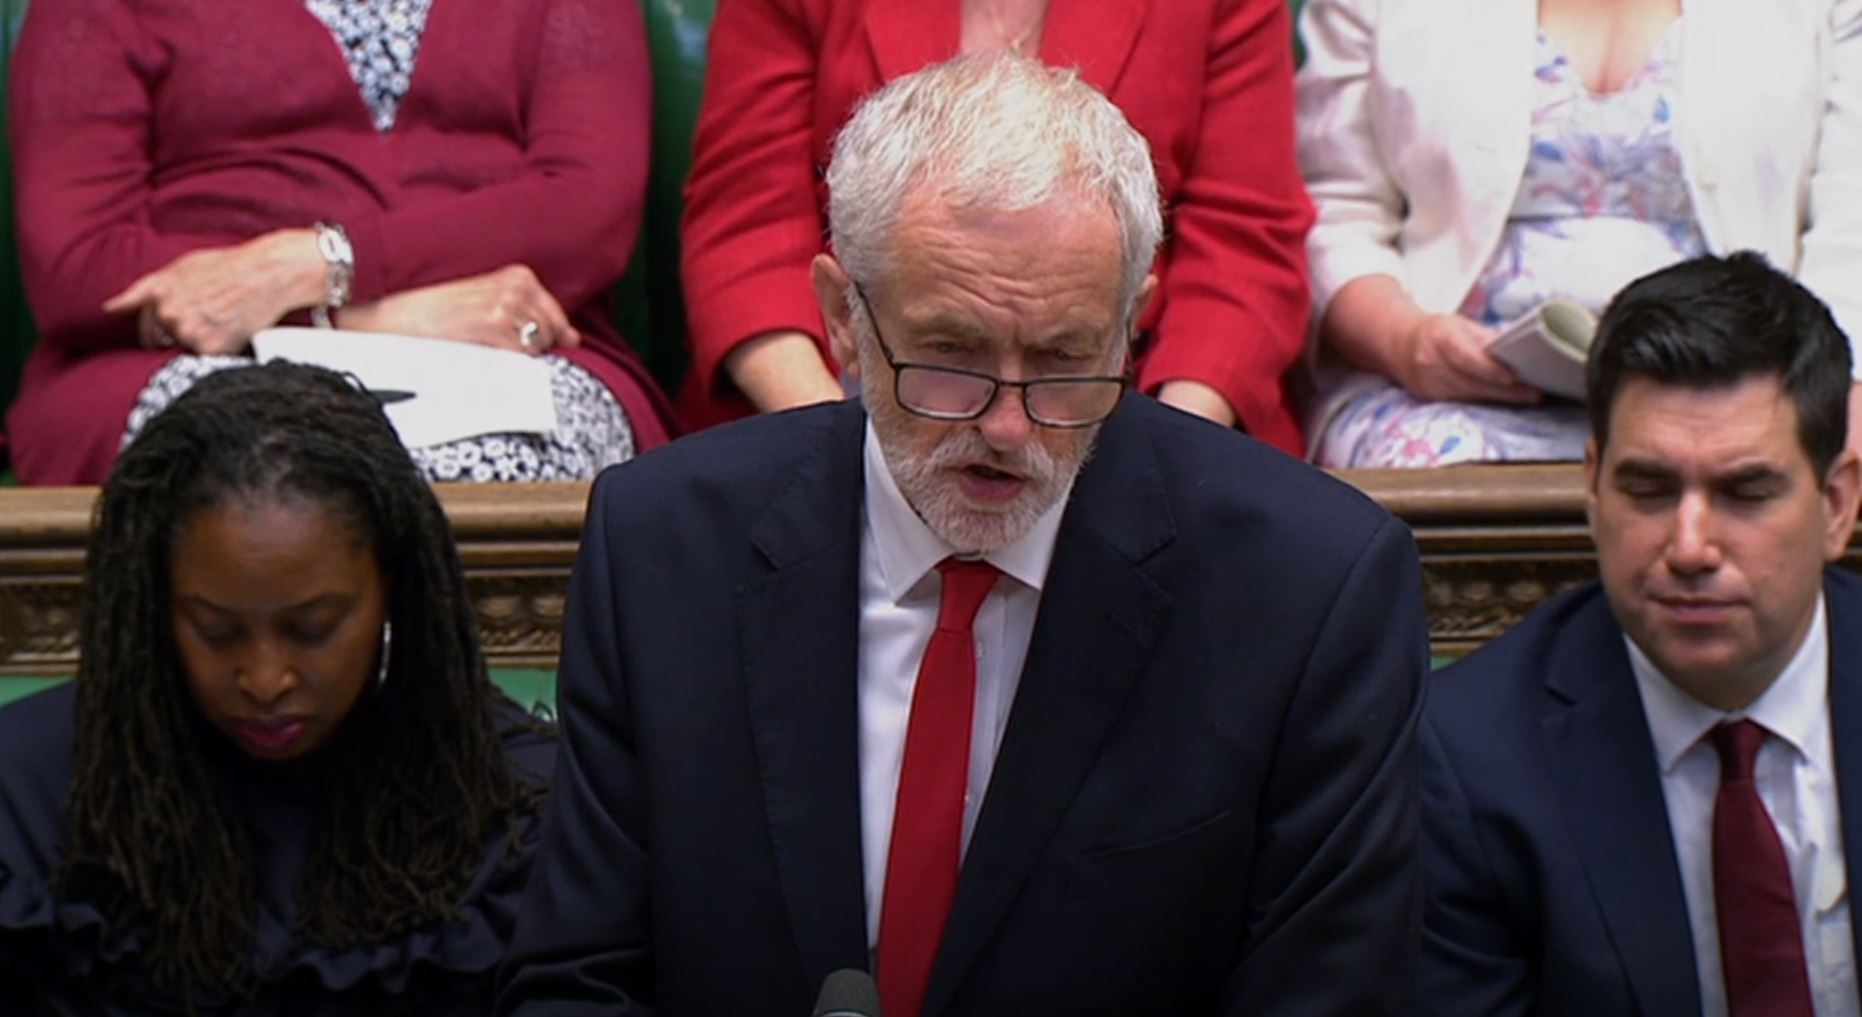 UK Labour under pressure over anti-Semitism after BBC doc